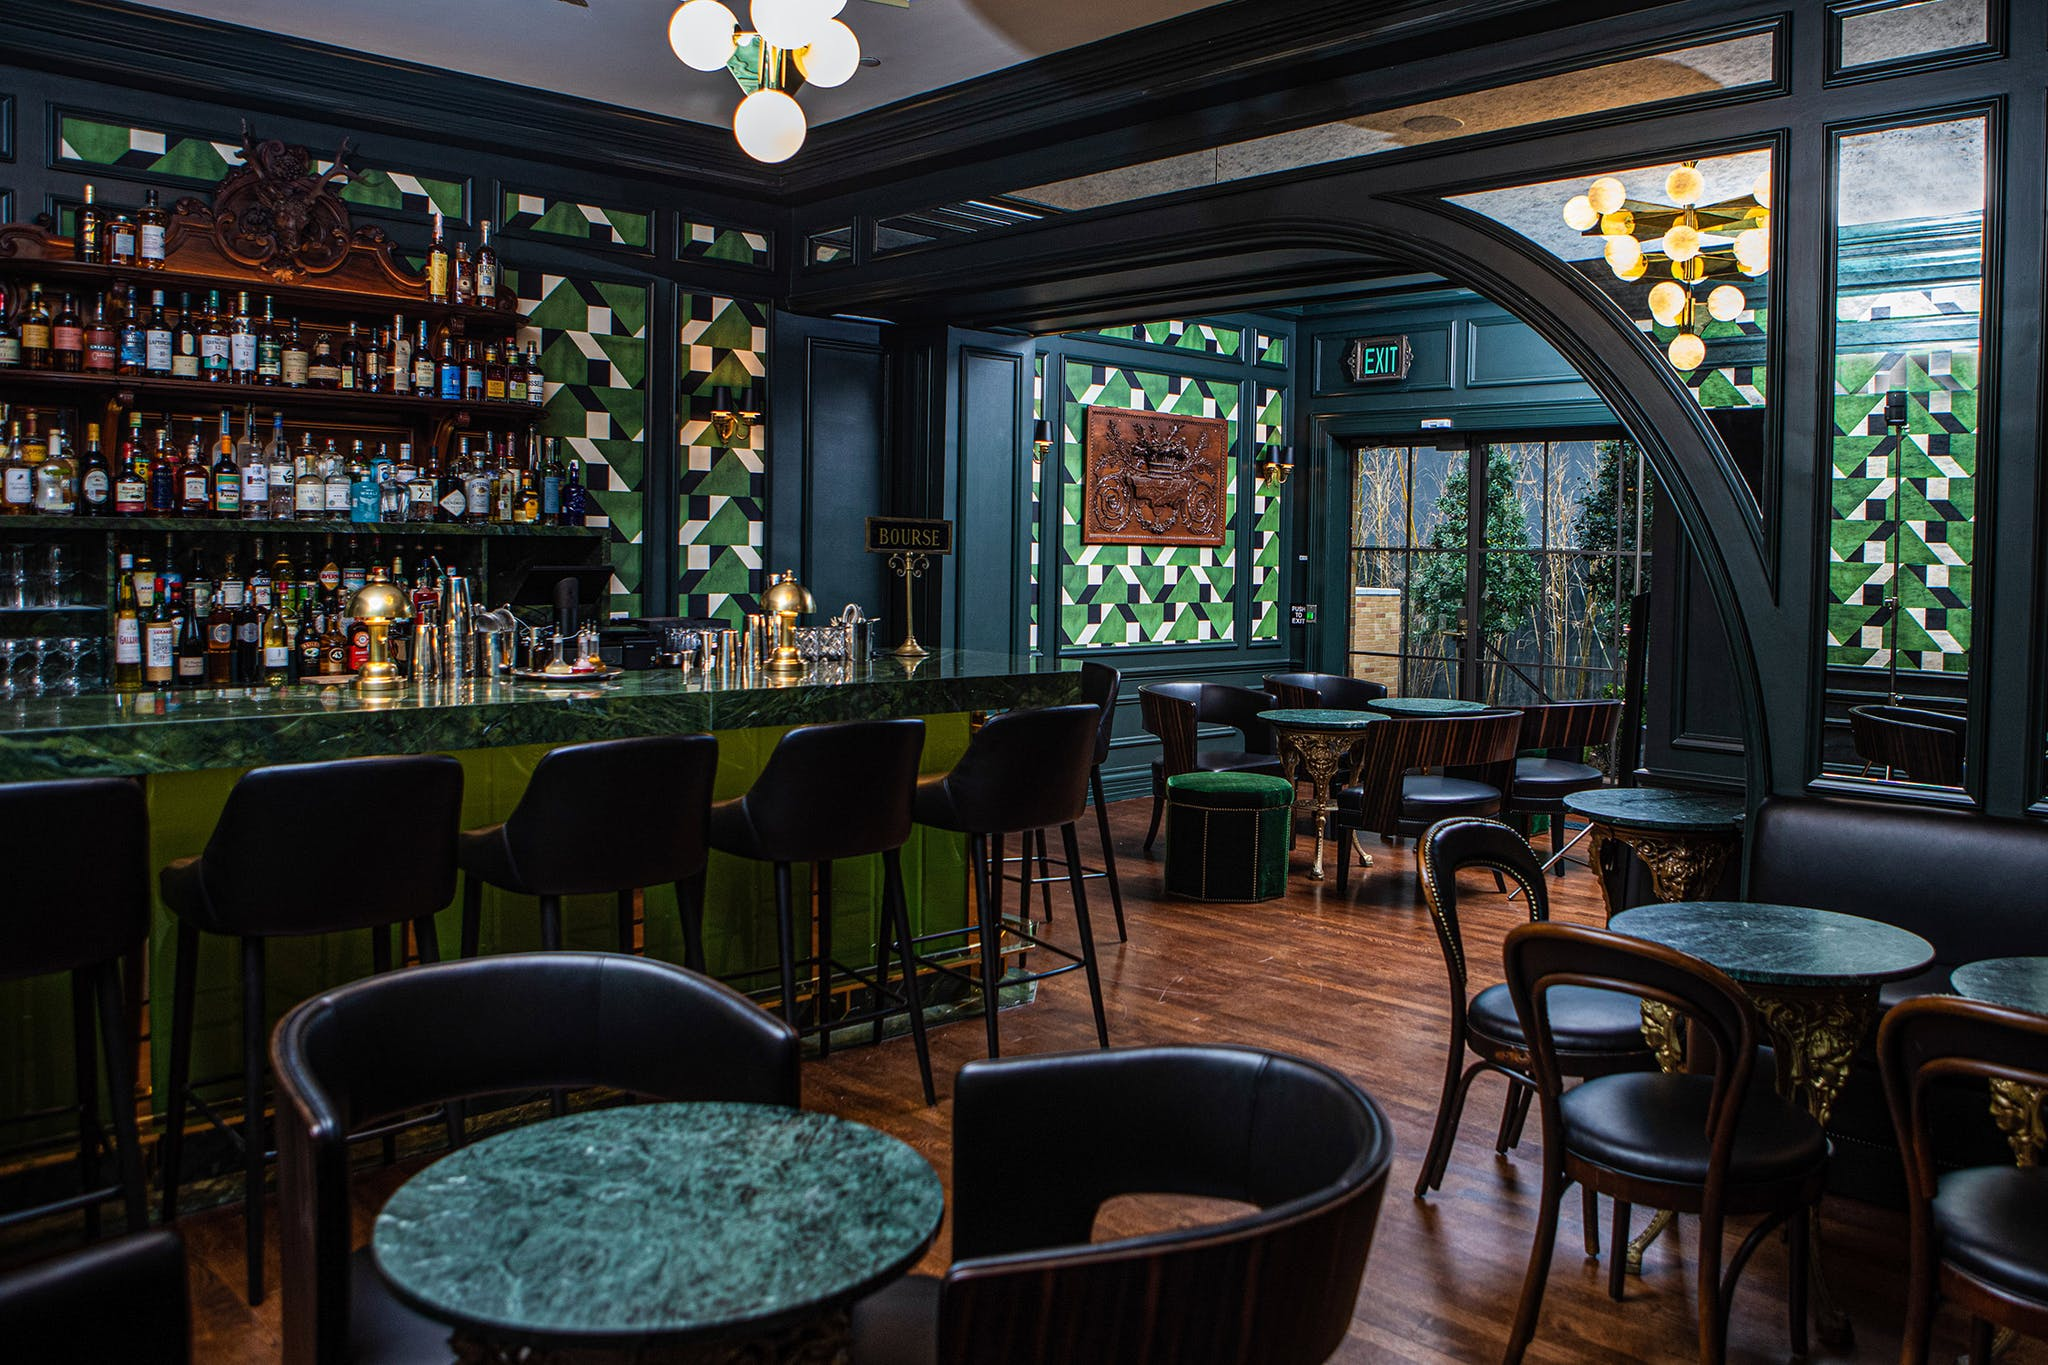 Like every material and motif introduced into the updated space, the bar's wallcovering is true to 1920s design, printed with a Russian pattern from that era.